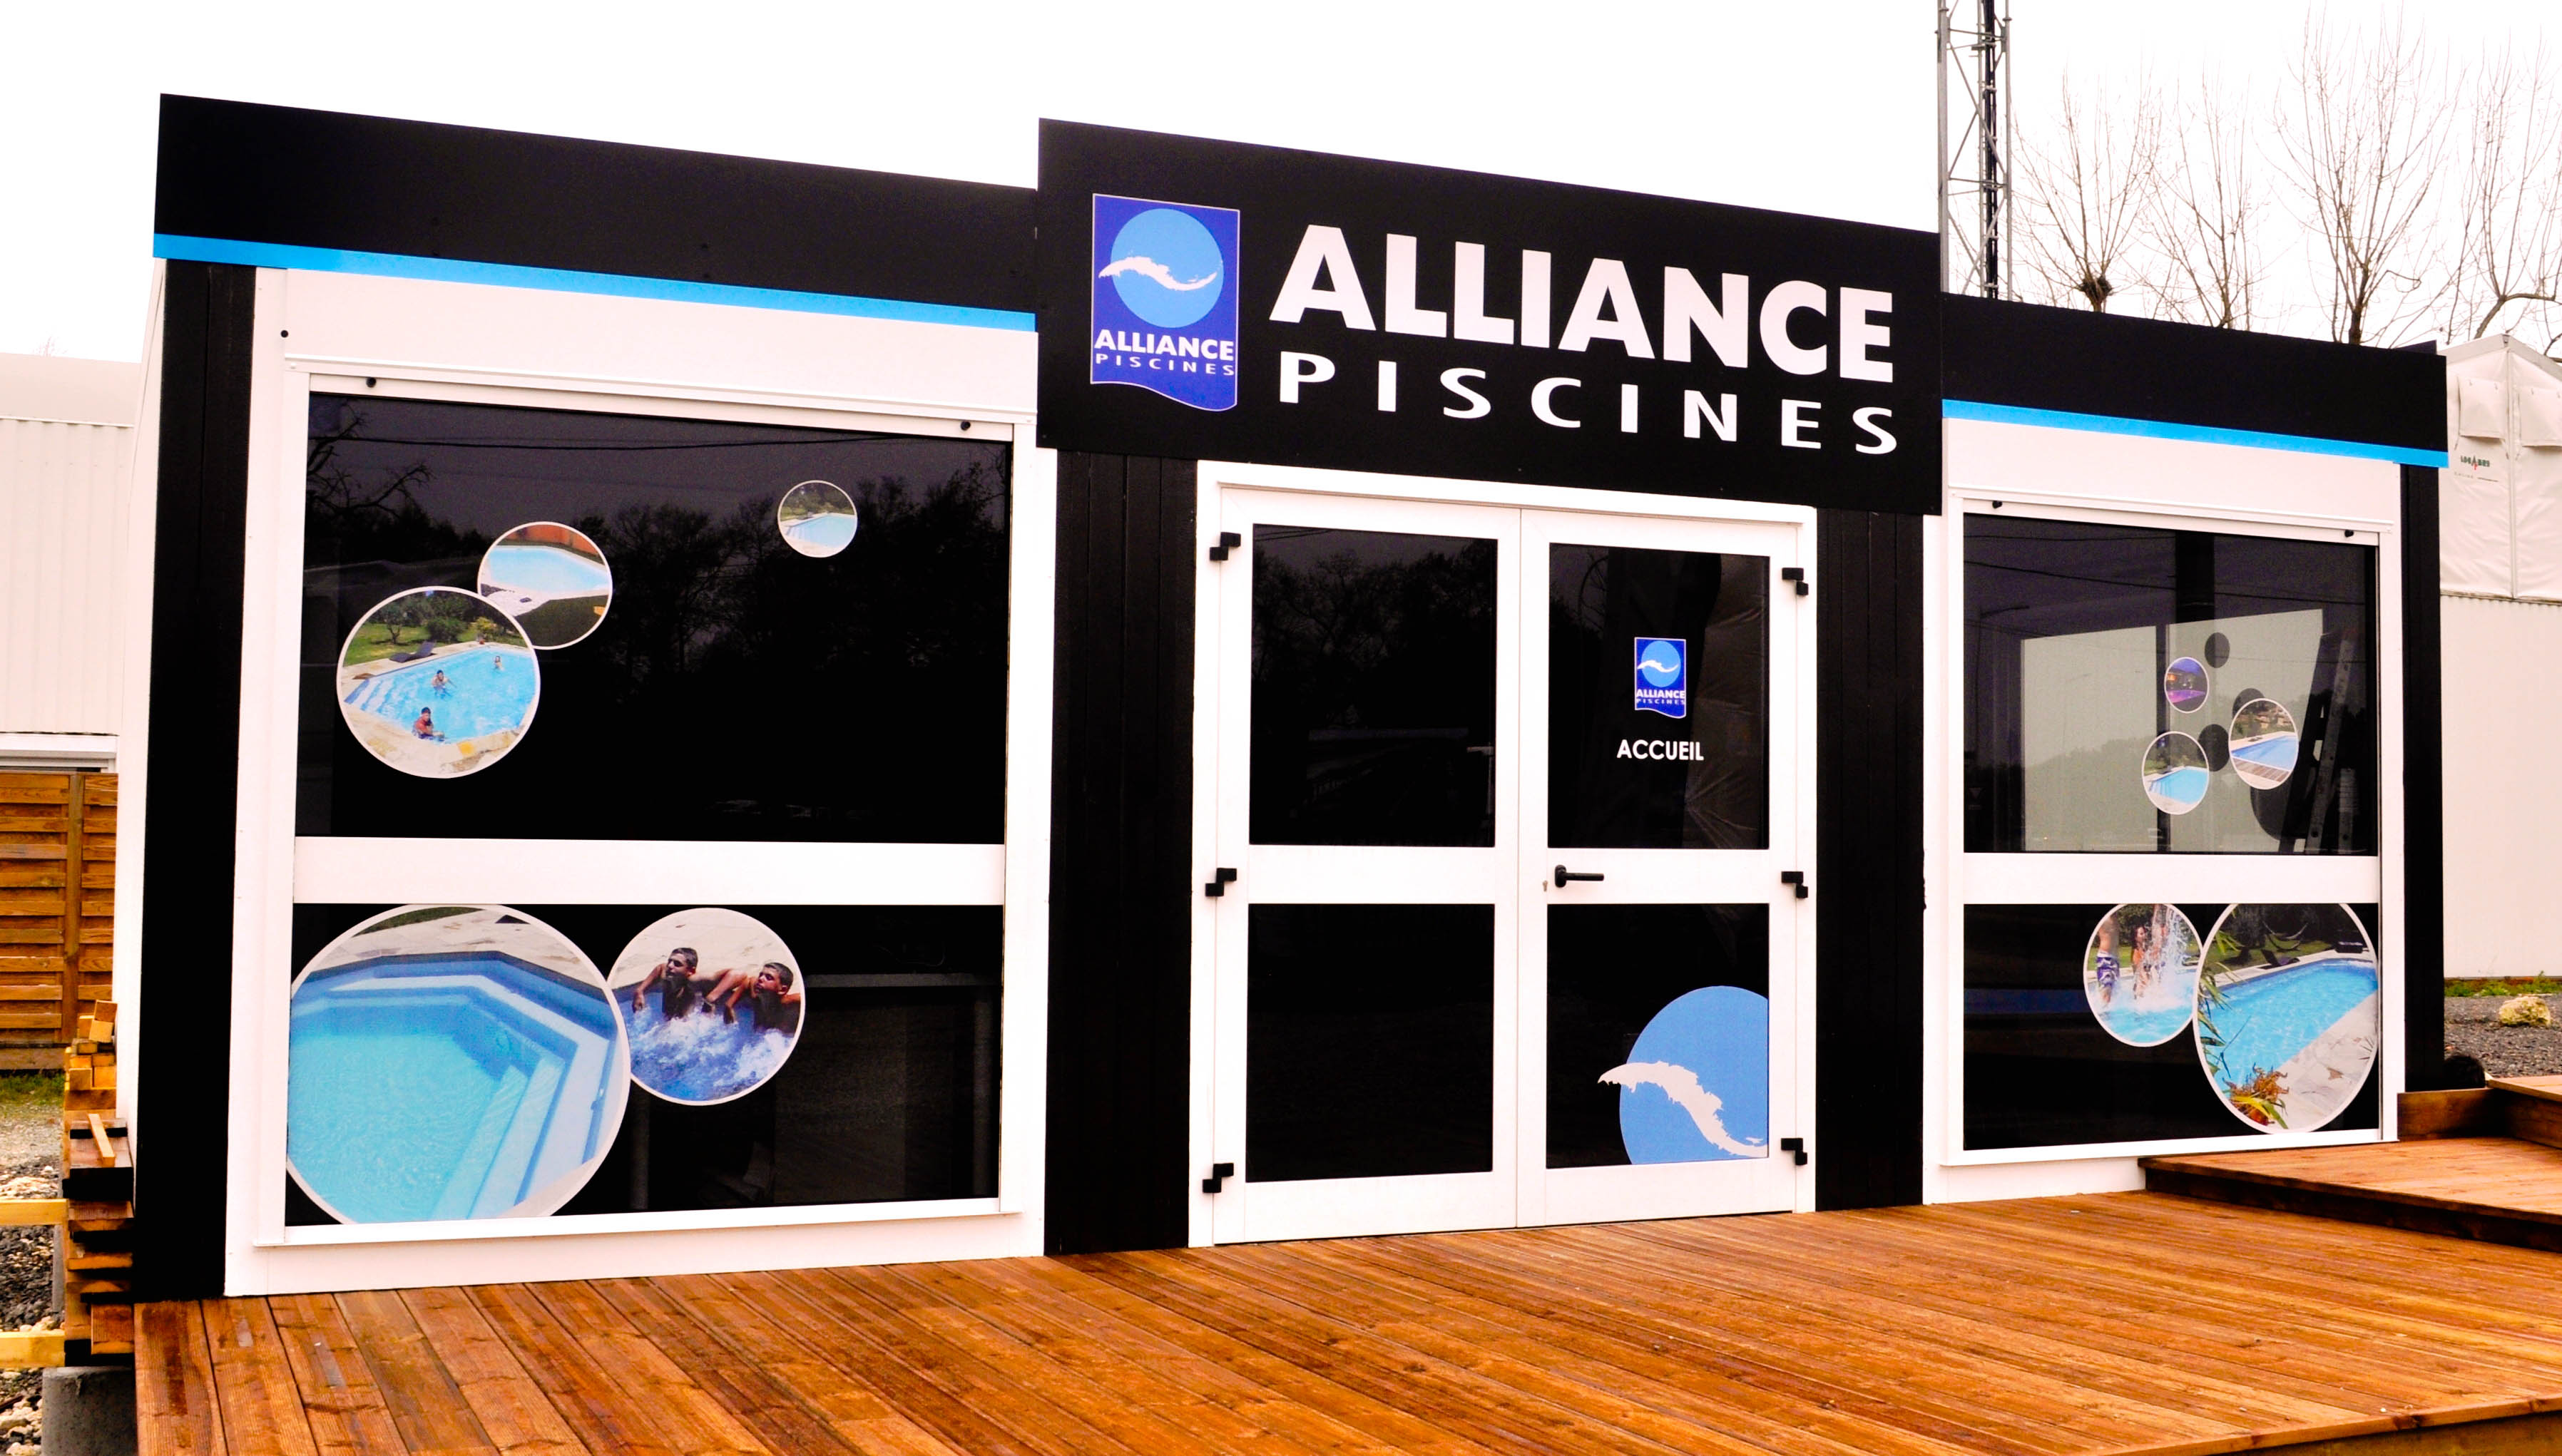 Vitrine pour Alliance Piscine